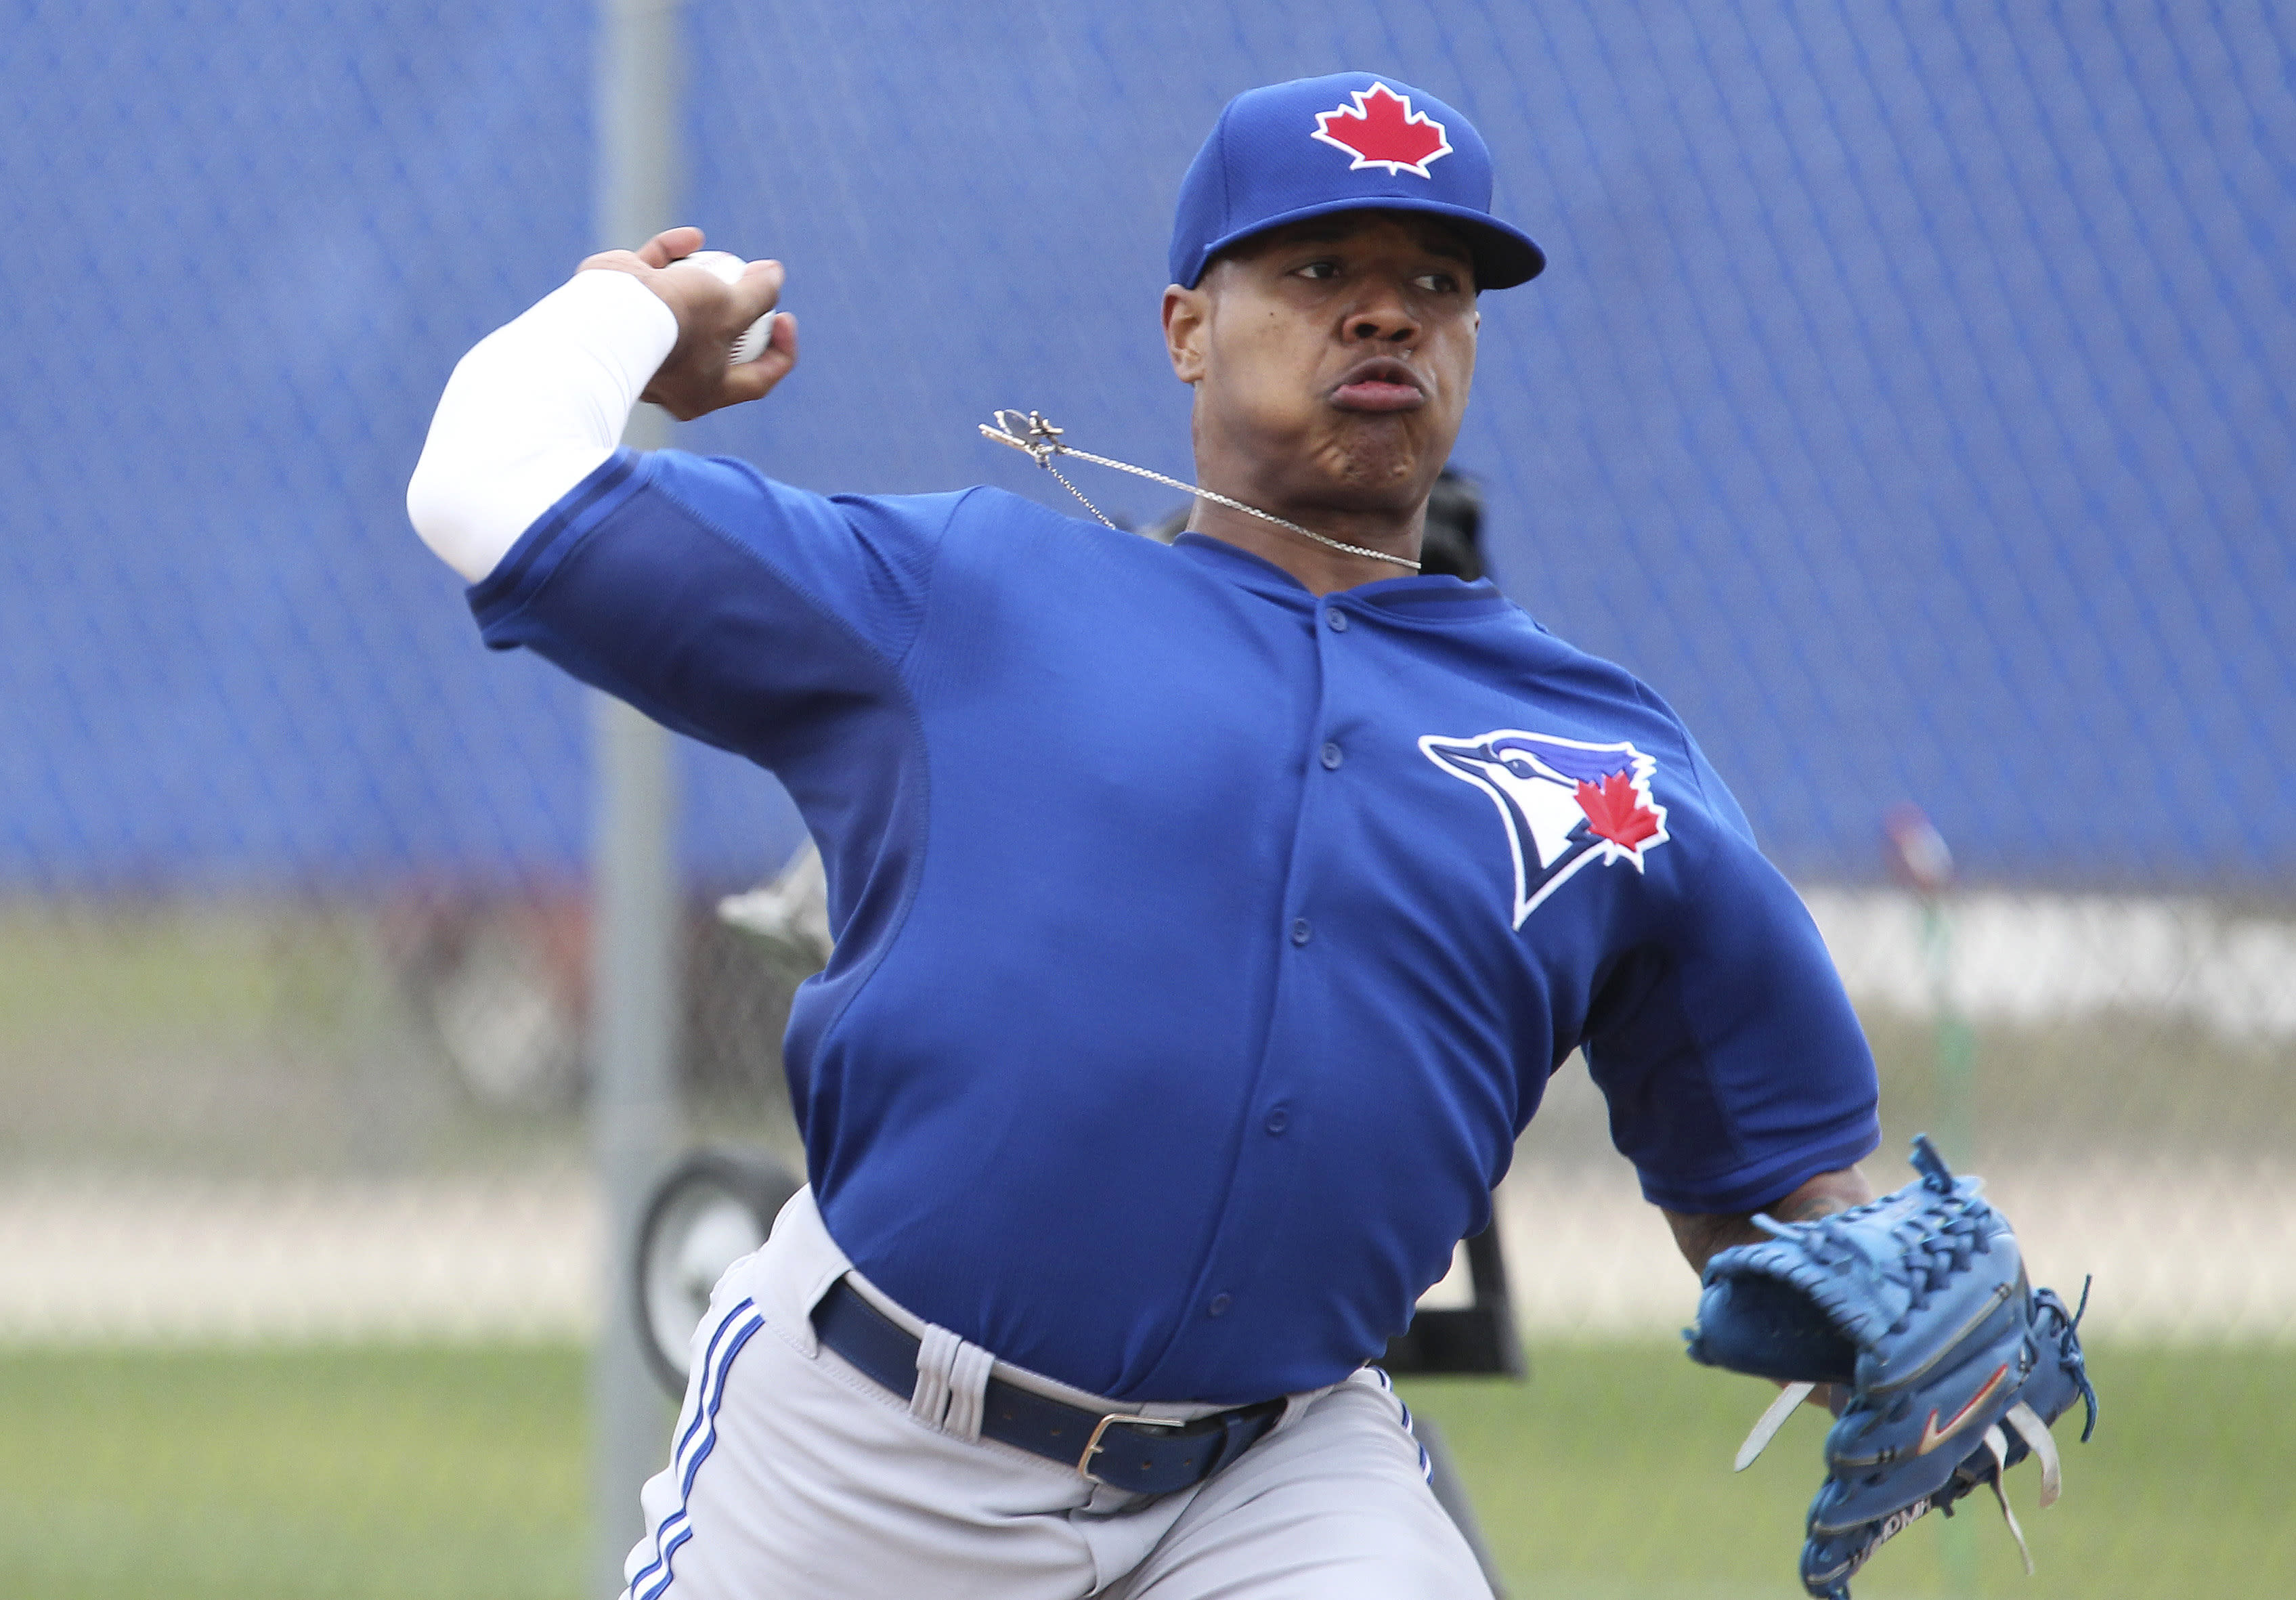 Marcus Stroman returning to college while recovering from knee injury